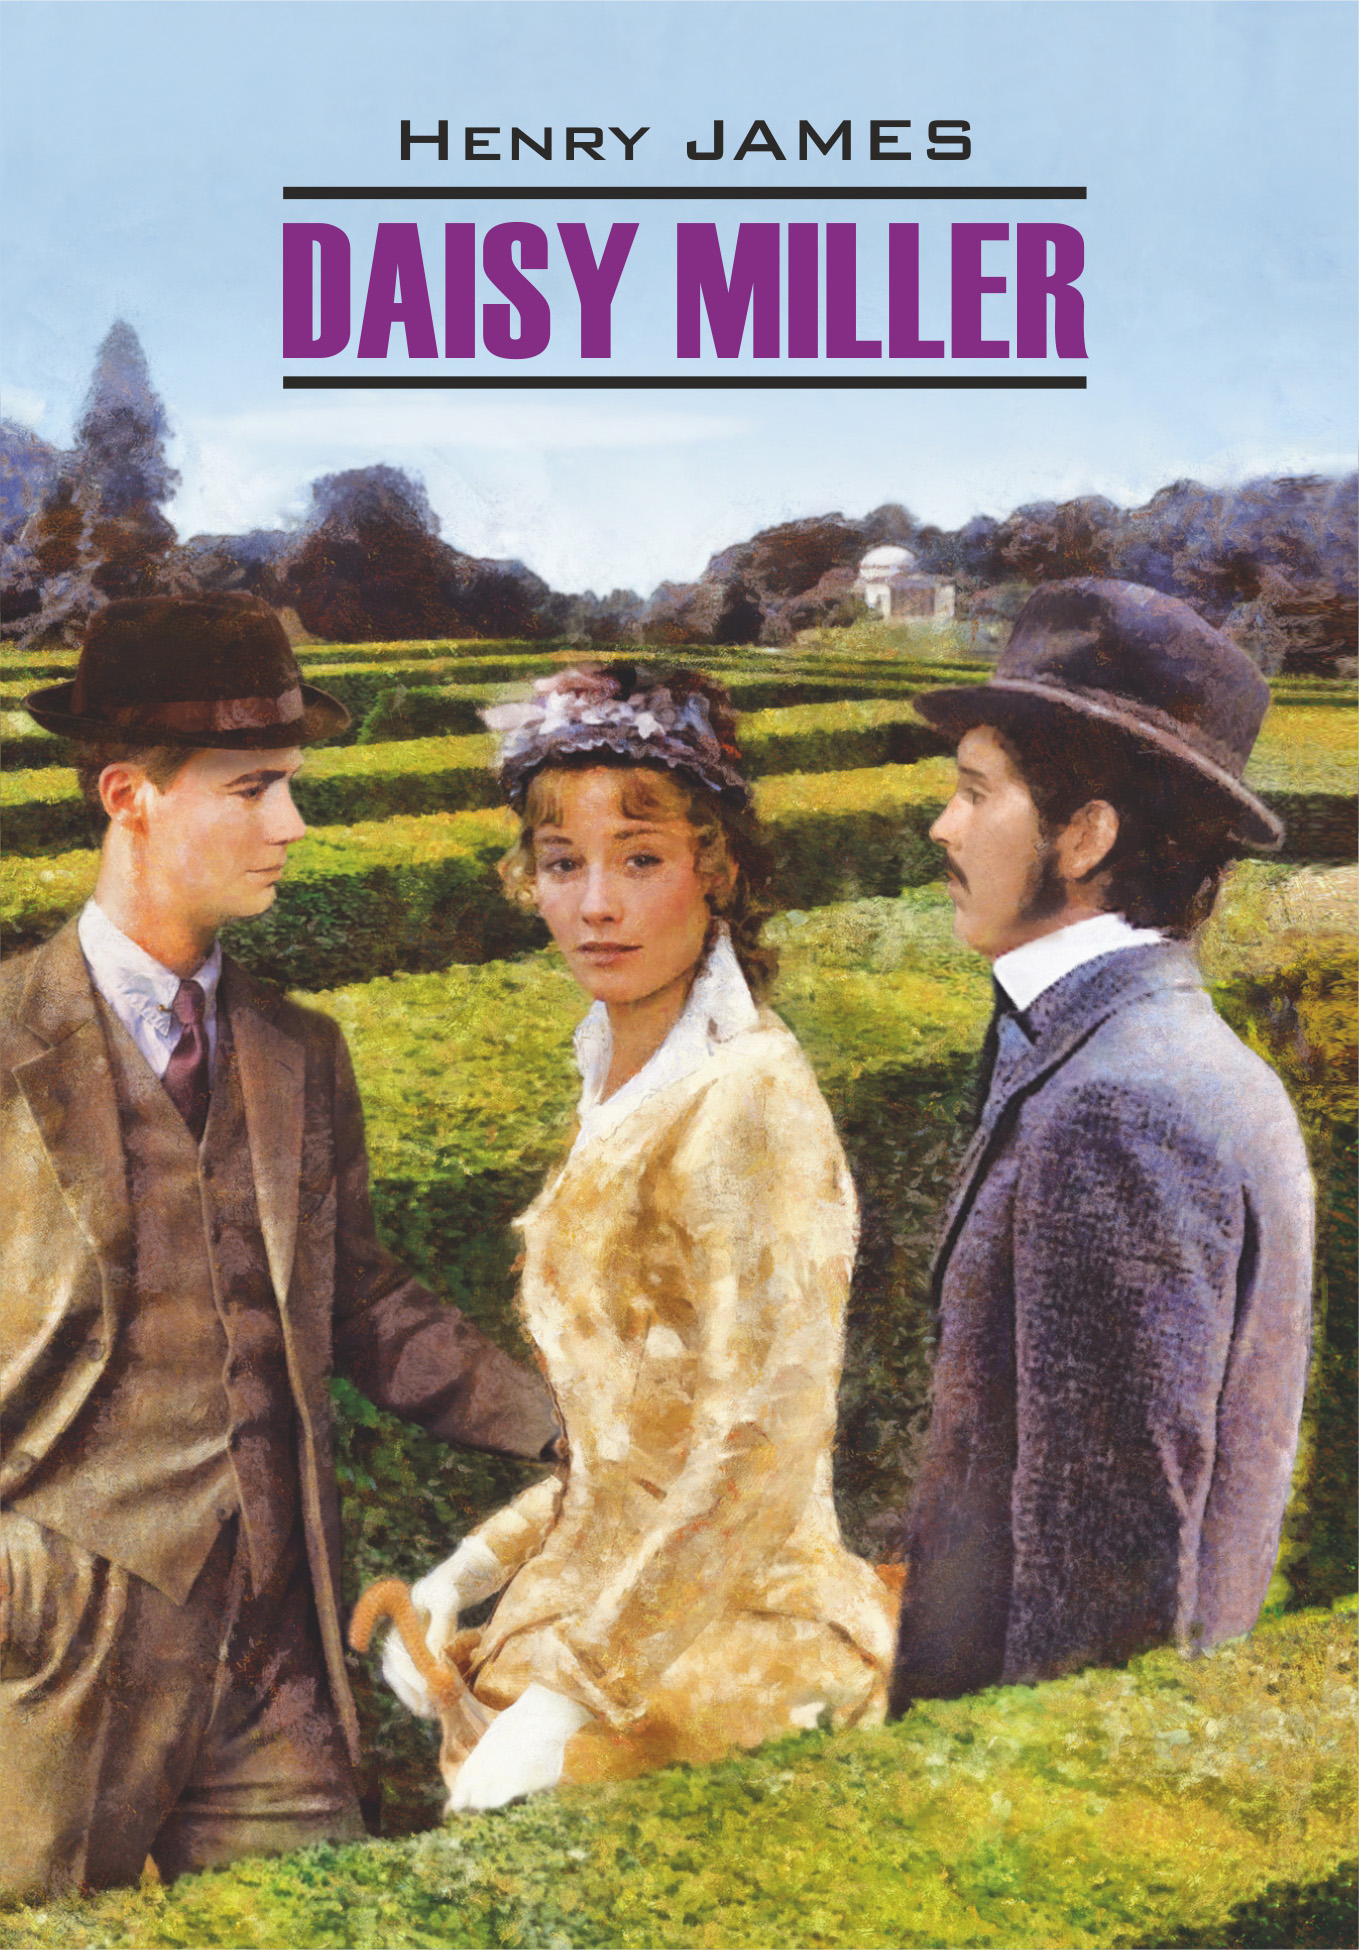 Генри Джеймс Daisy Miller / Дэйзи Миллер. Книга для чтения на английском языке vention brand high speed usb 2 0 type a to b male to male scanner fax machine computer printer cable sync data charging cord